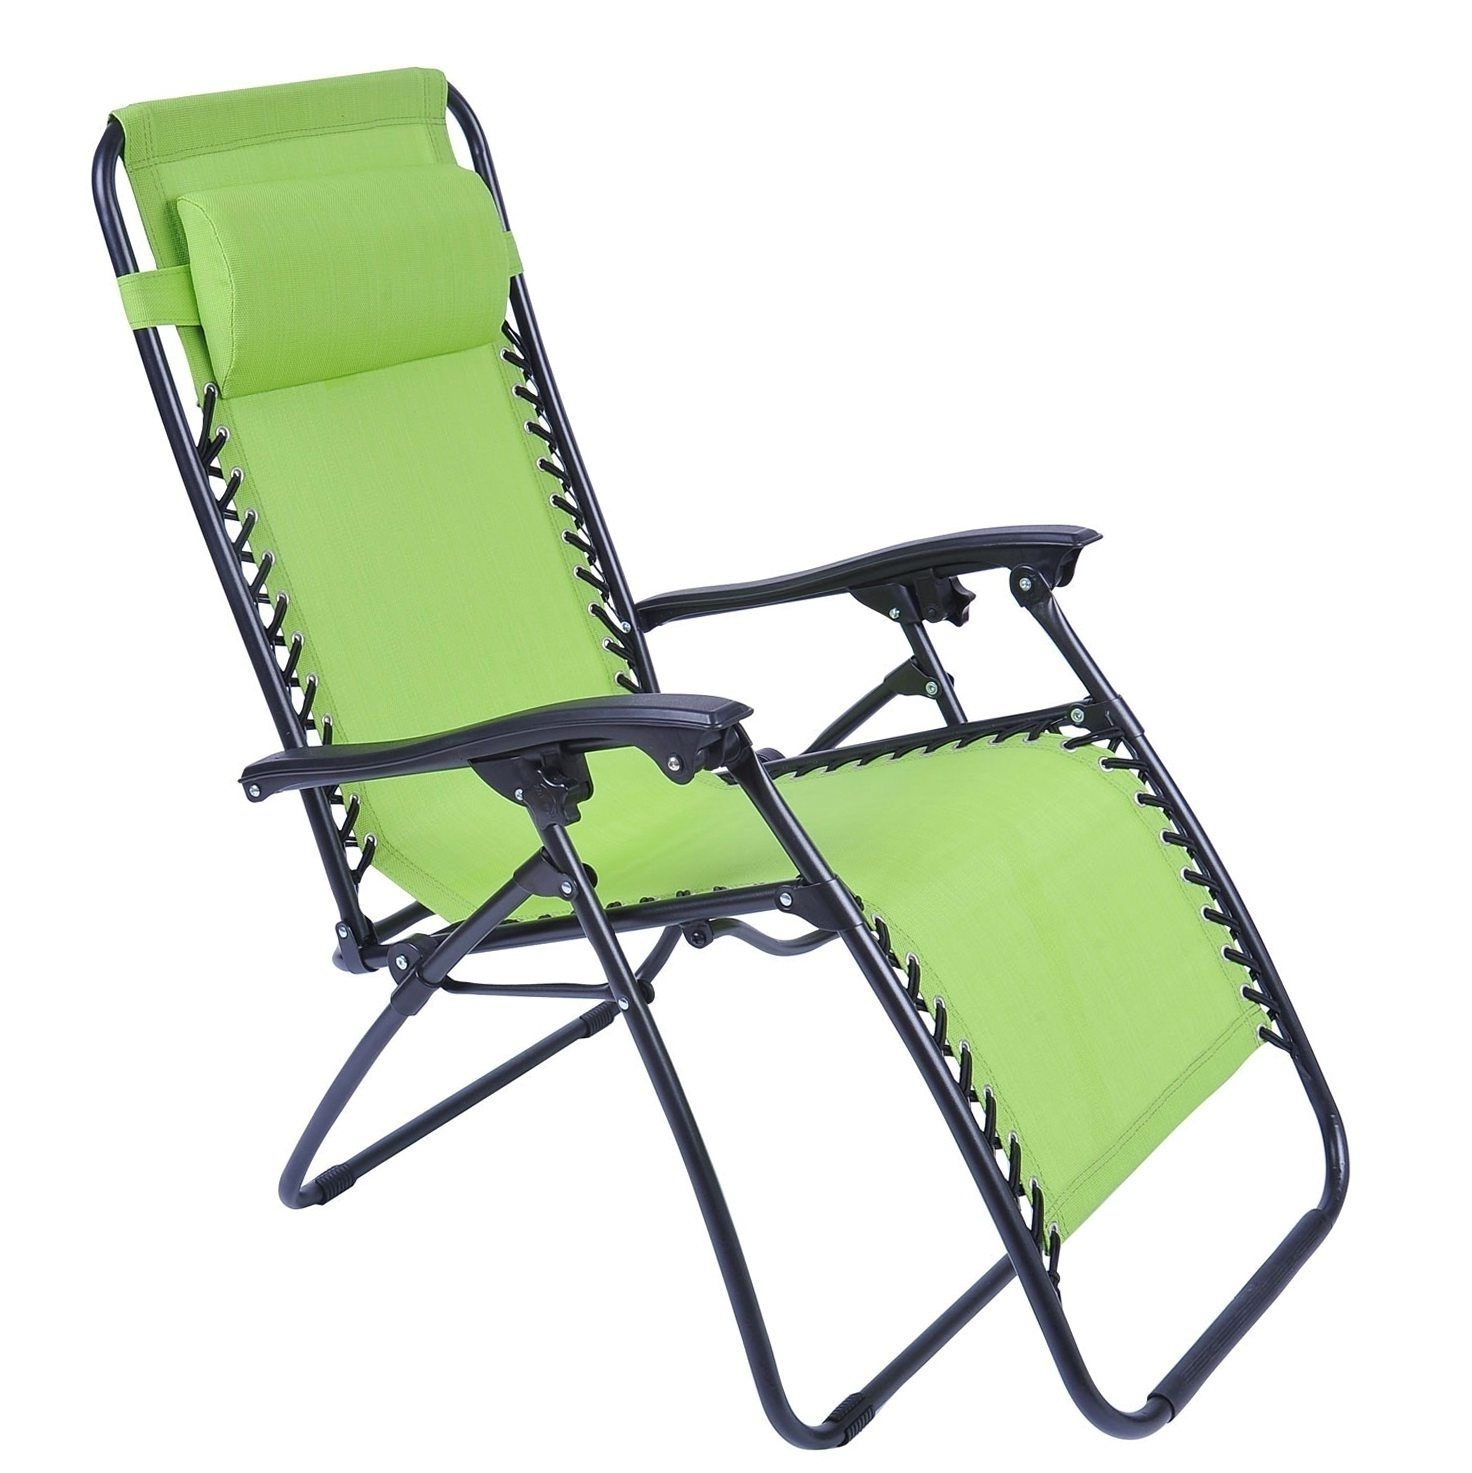 Lounge Chair Outdoor Folding Folding Chaise Lounge Chair Patio Intended For Famous Folding Chaise Lounge Lawn Chairs (View 8 of 15)